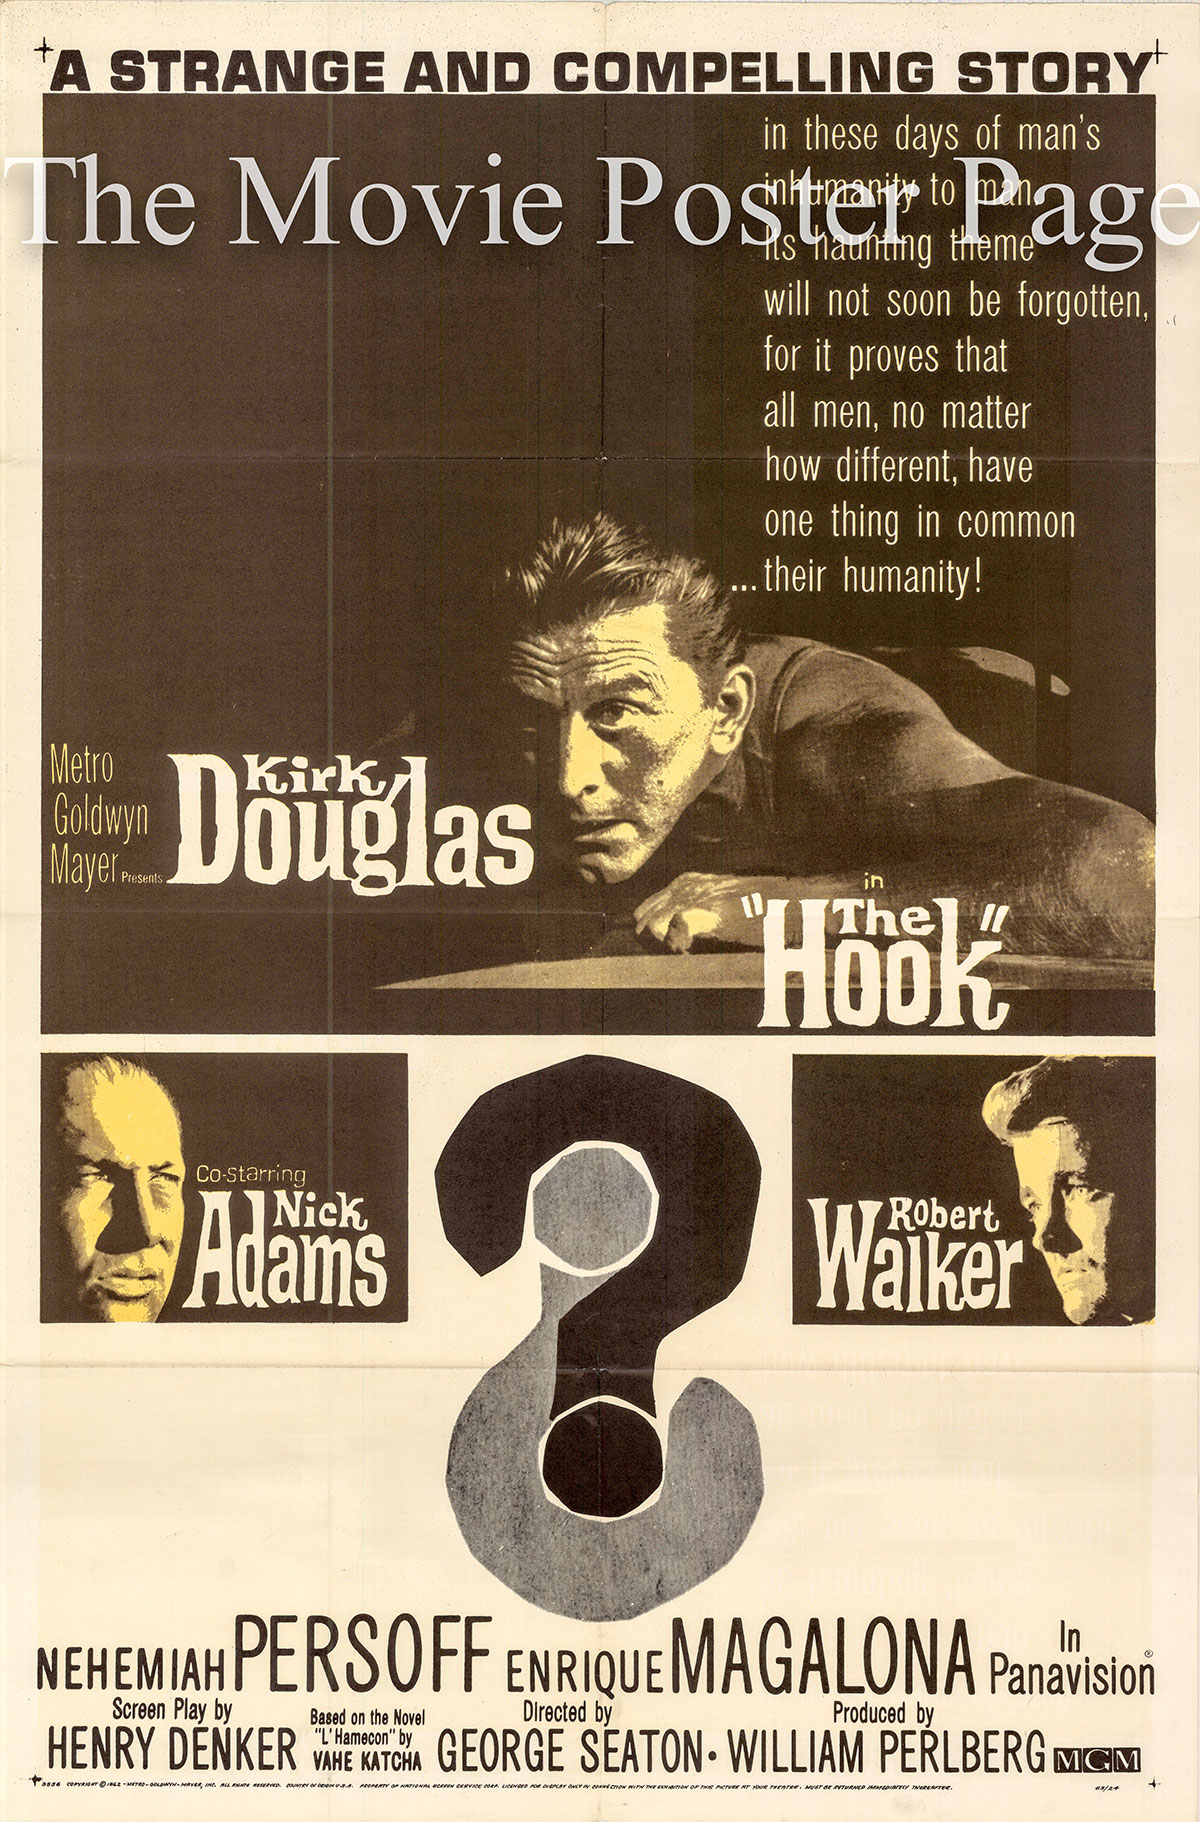 Pictured is a US one-sheet promotional poster for the 1964